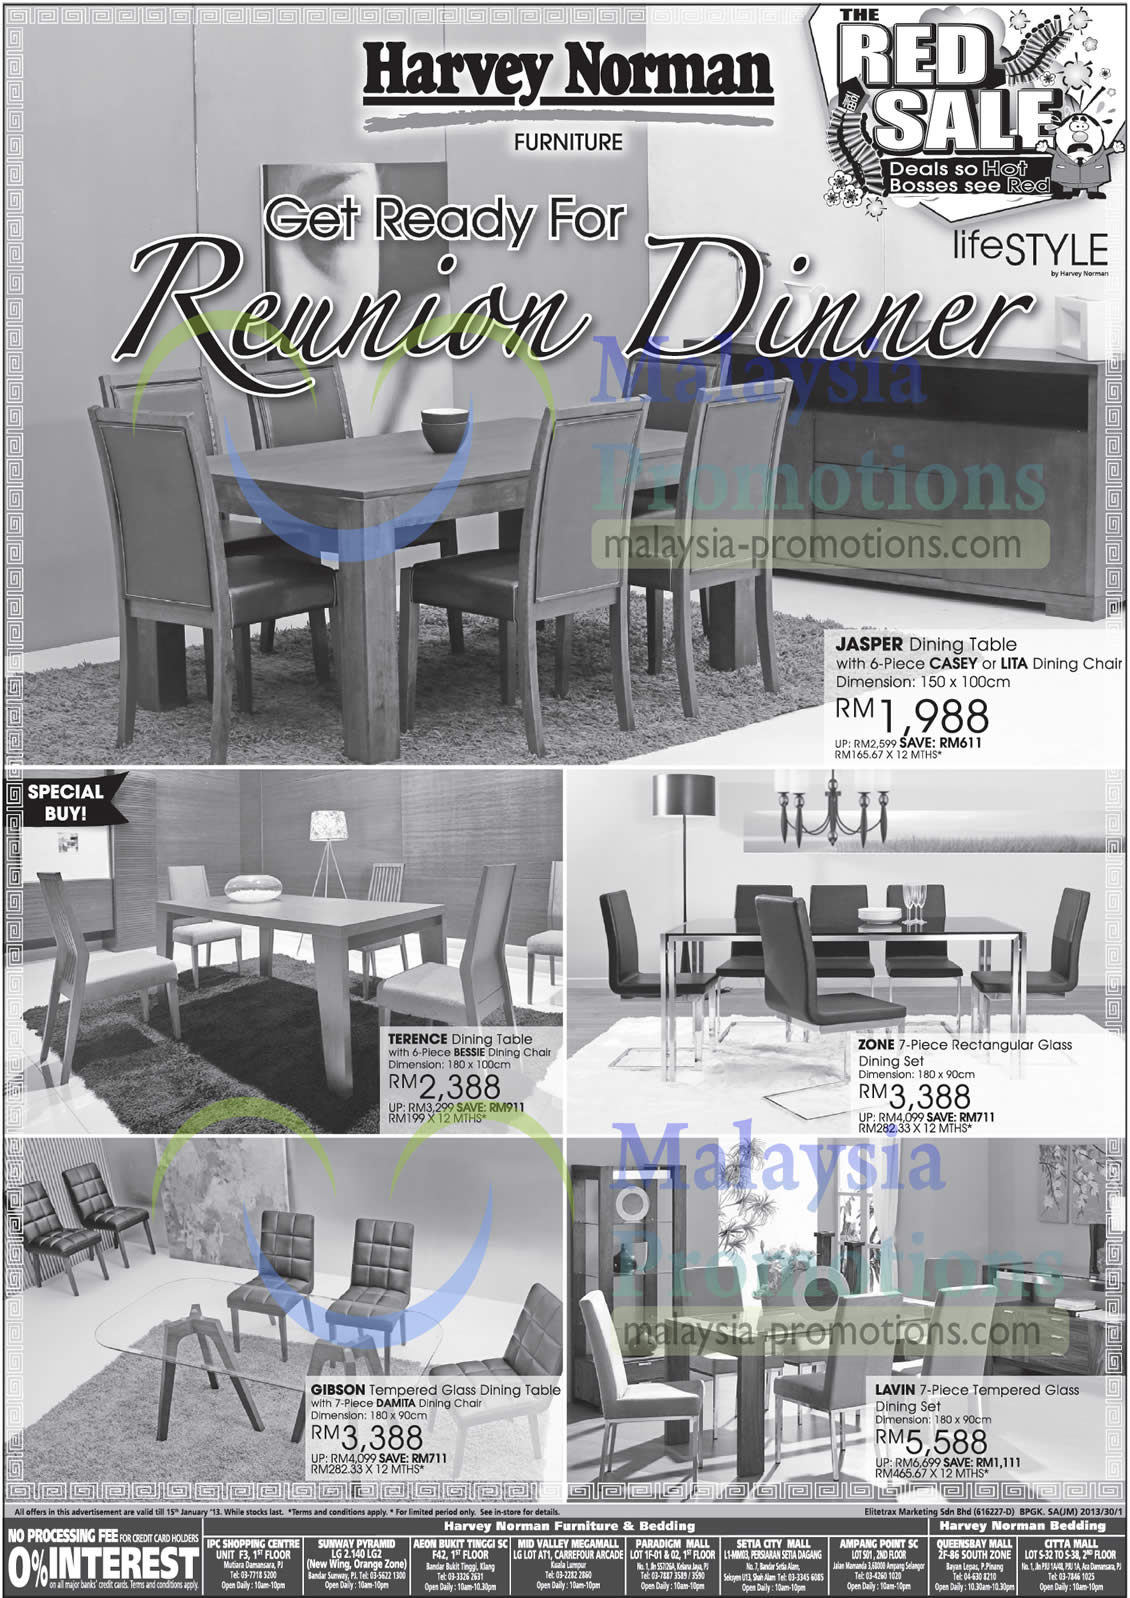 Jasper Dining Table Terence Dining Table Zone Dining Set  : Jasper Dining Table Terence Dining Table Zone Dining Set Gibson Dining Table Lavin Dining Set from msiapromos.com size 1130 x 1598 jpeg 272kB